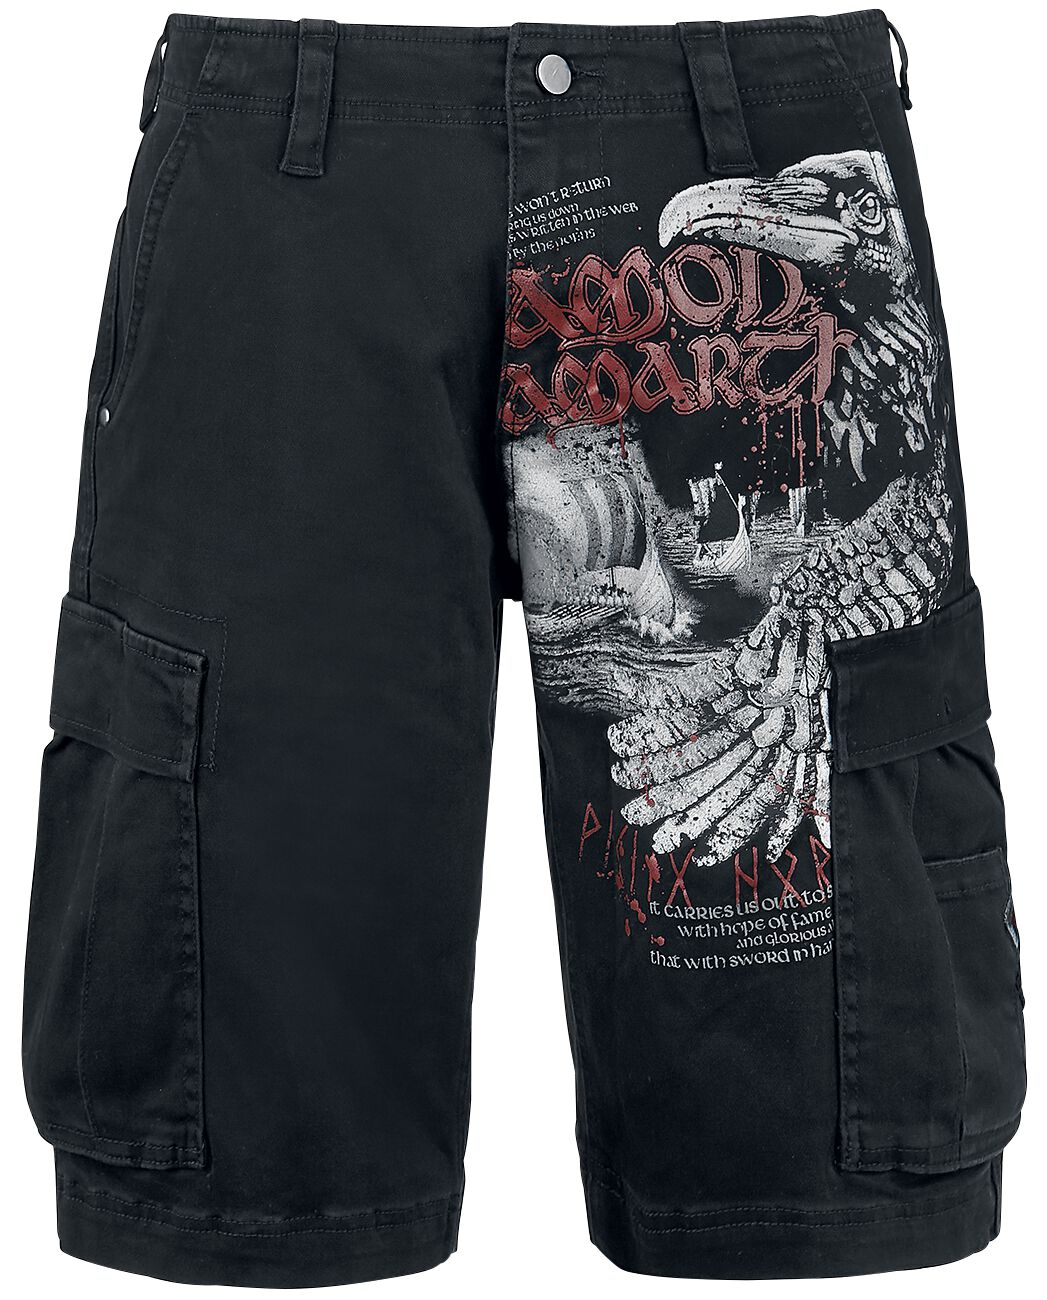 Image of   Amon Amarth Raven Cargo shorts sort